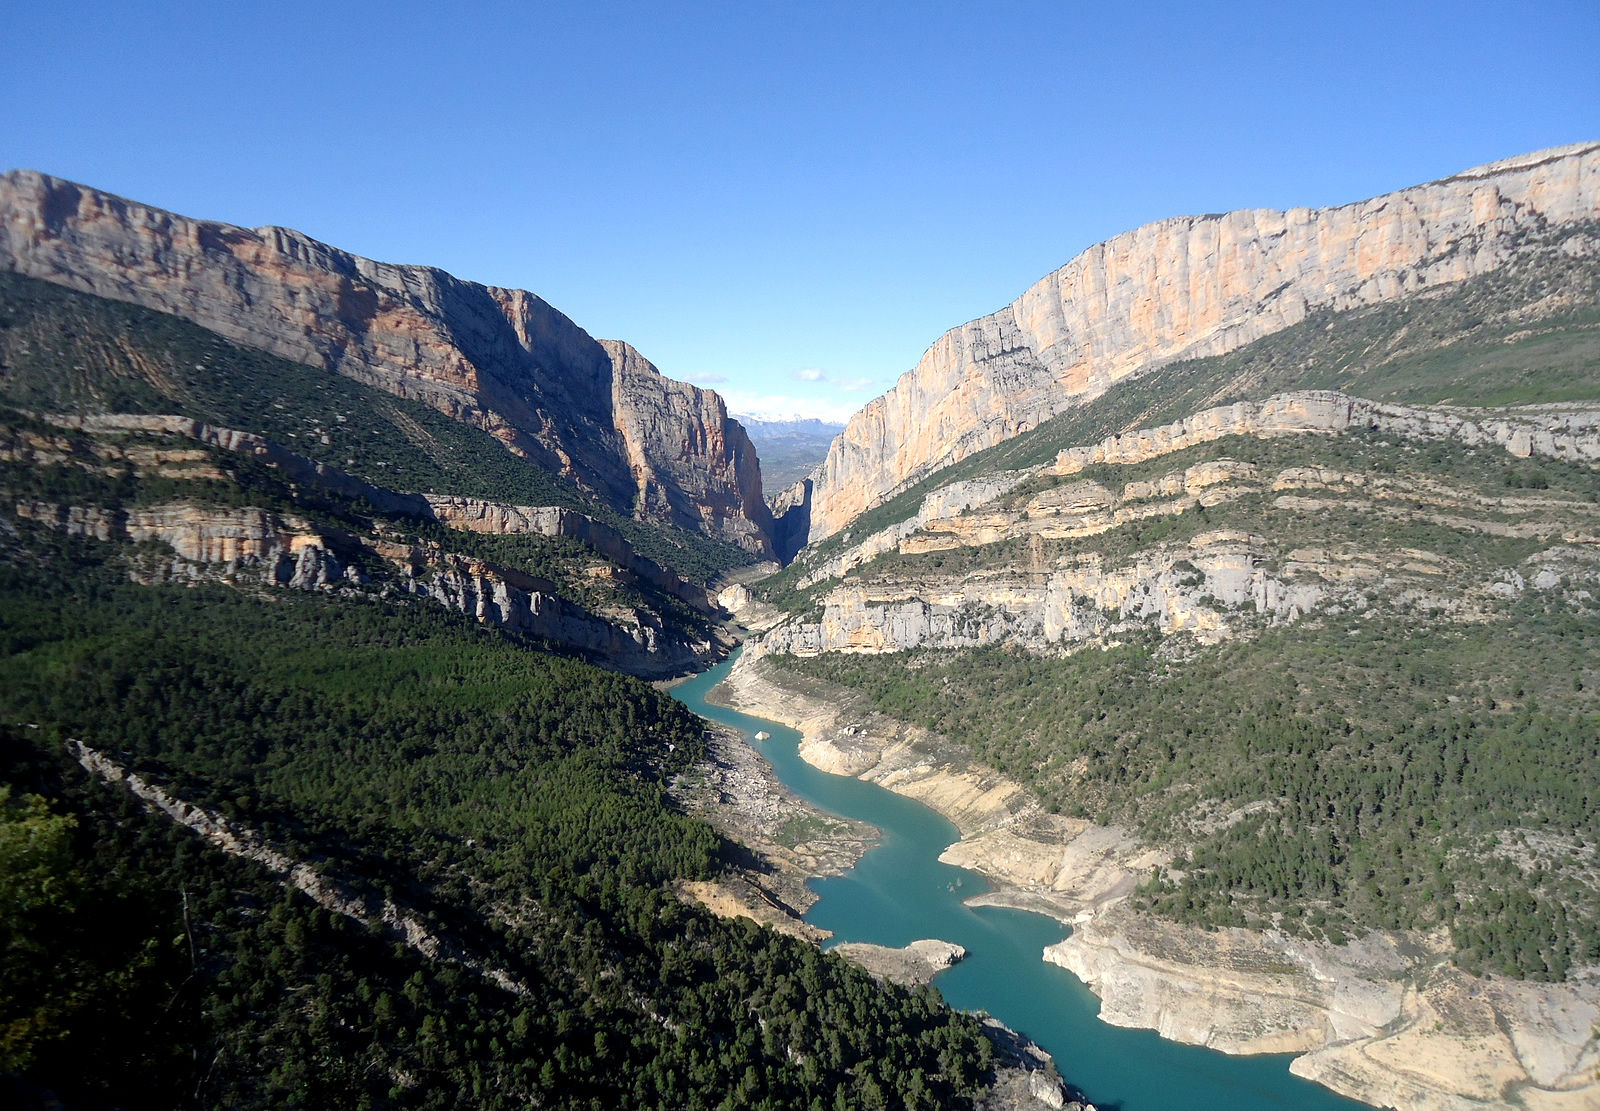 The Congost de Mont-rebei, a beautiful natural setting in Catalonia